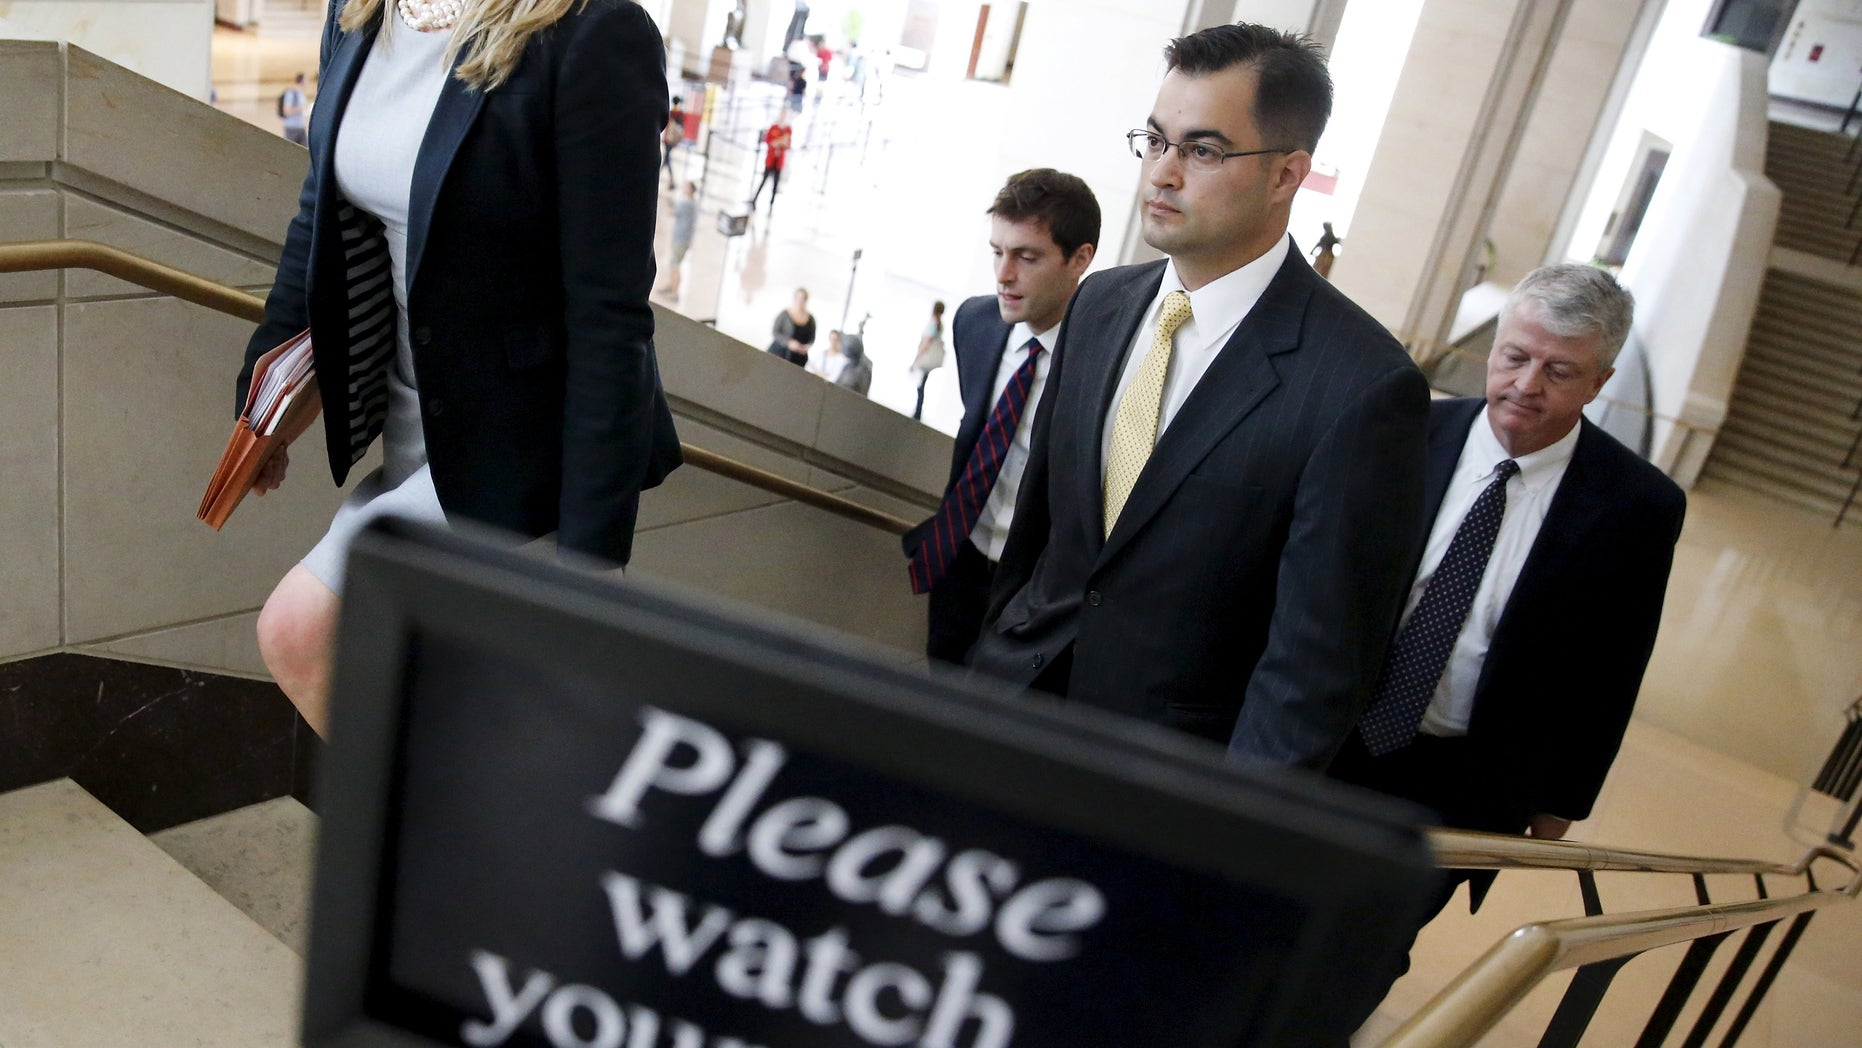 Sept. 10, 2015: Bryan Pagliano (2nd R), aide to former U.S. Secretary of State Hillary Clinton, departs with his legal team after appearing at a private session of the House Select Committee on Benghazi at the U.S. Capitol in Washington.